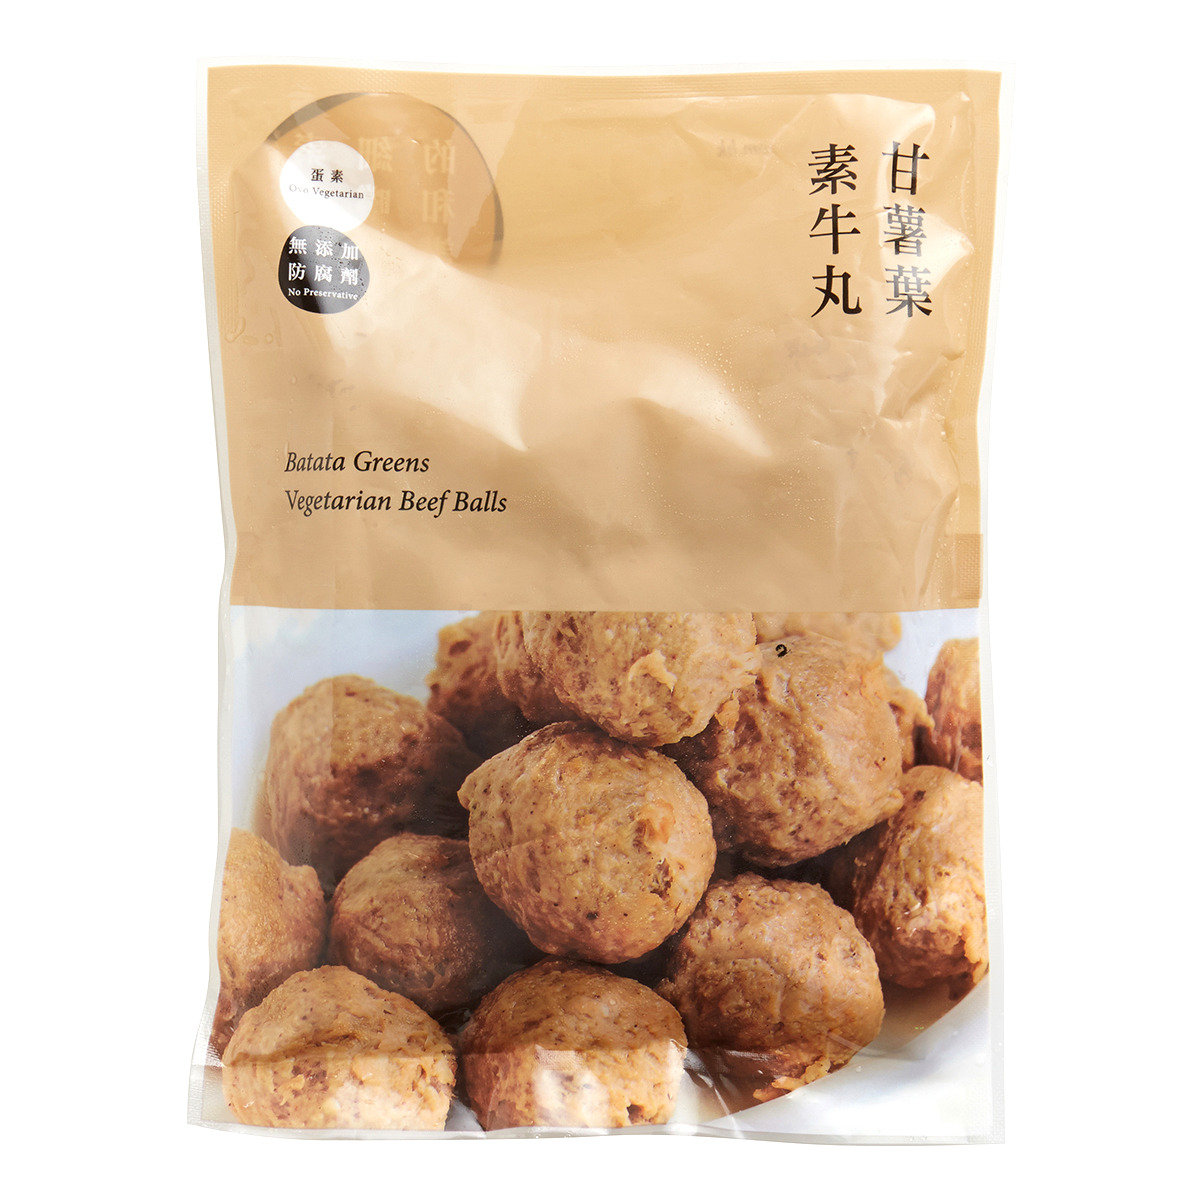 Vegetarian Beef Balls (Frozen Vegetarian's food)